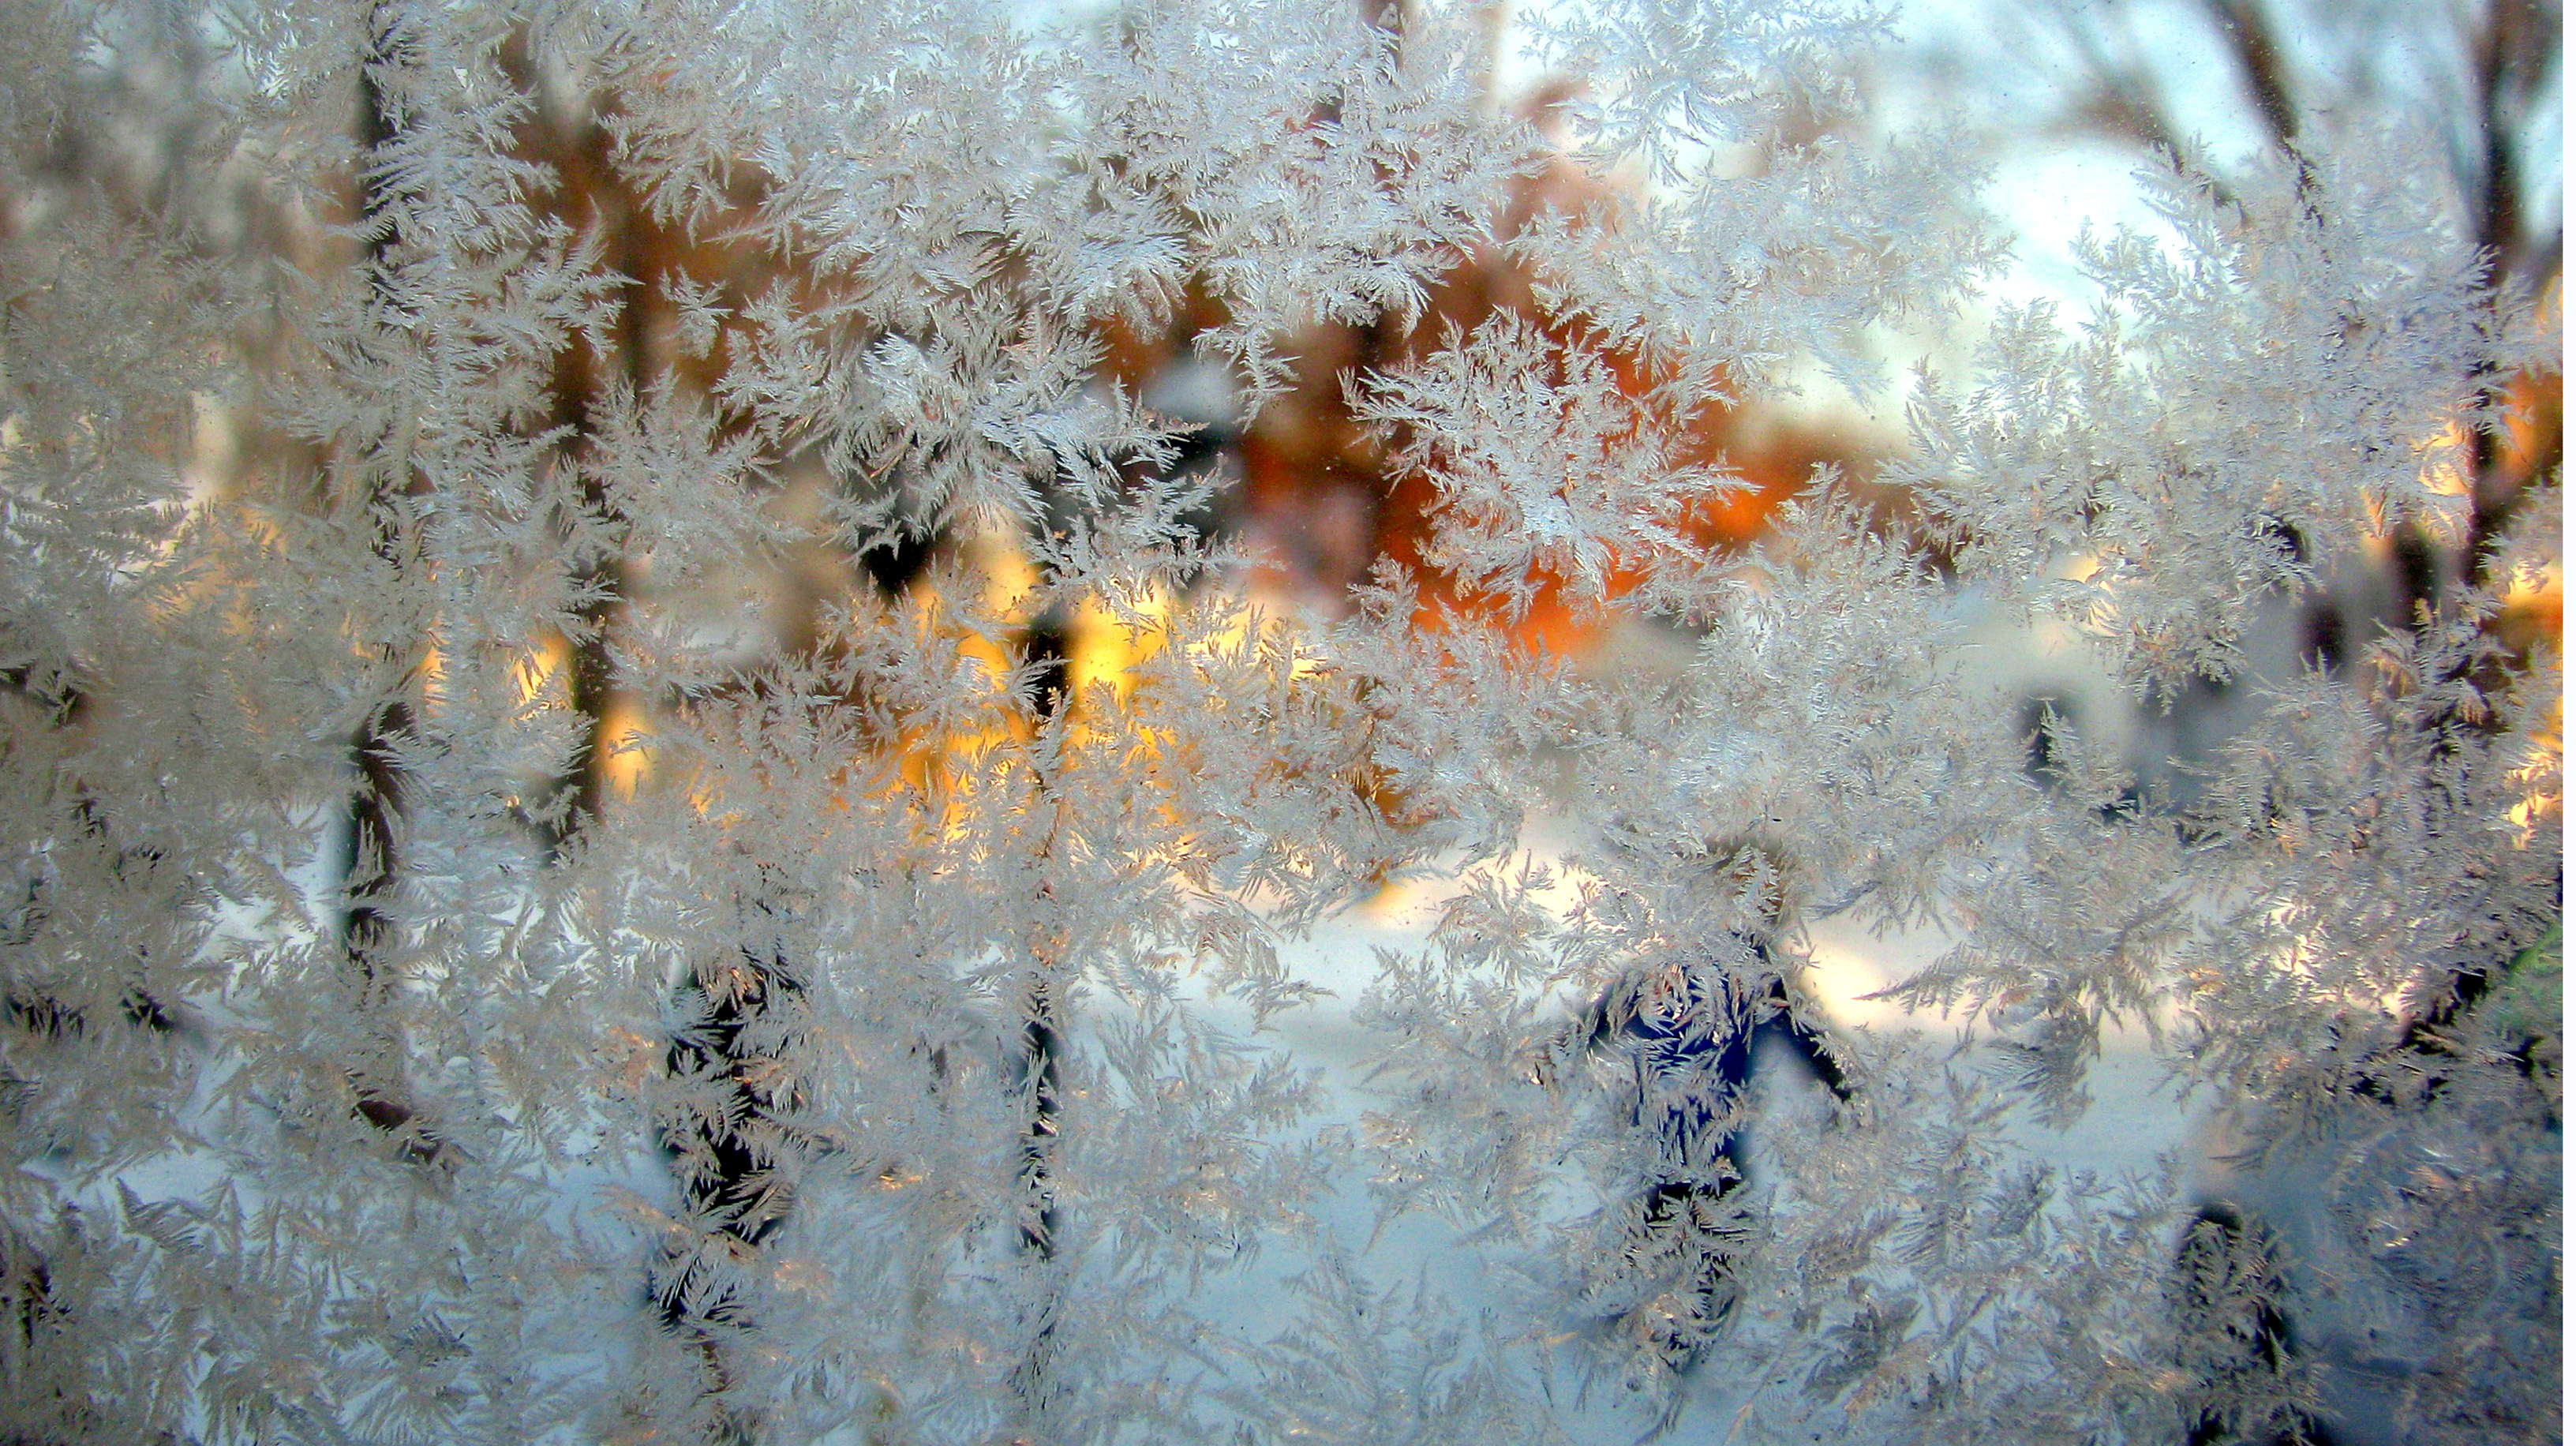 Frosted window 3 by callmexntrick on deviantart for Window frosting